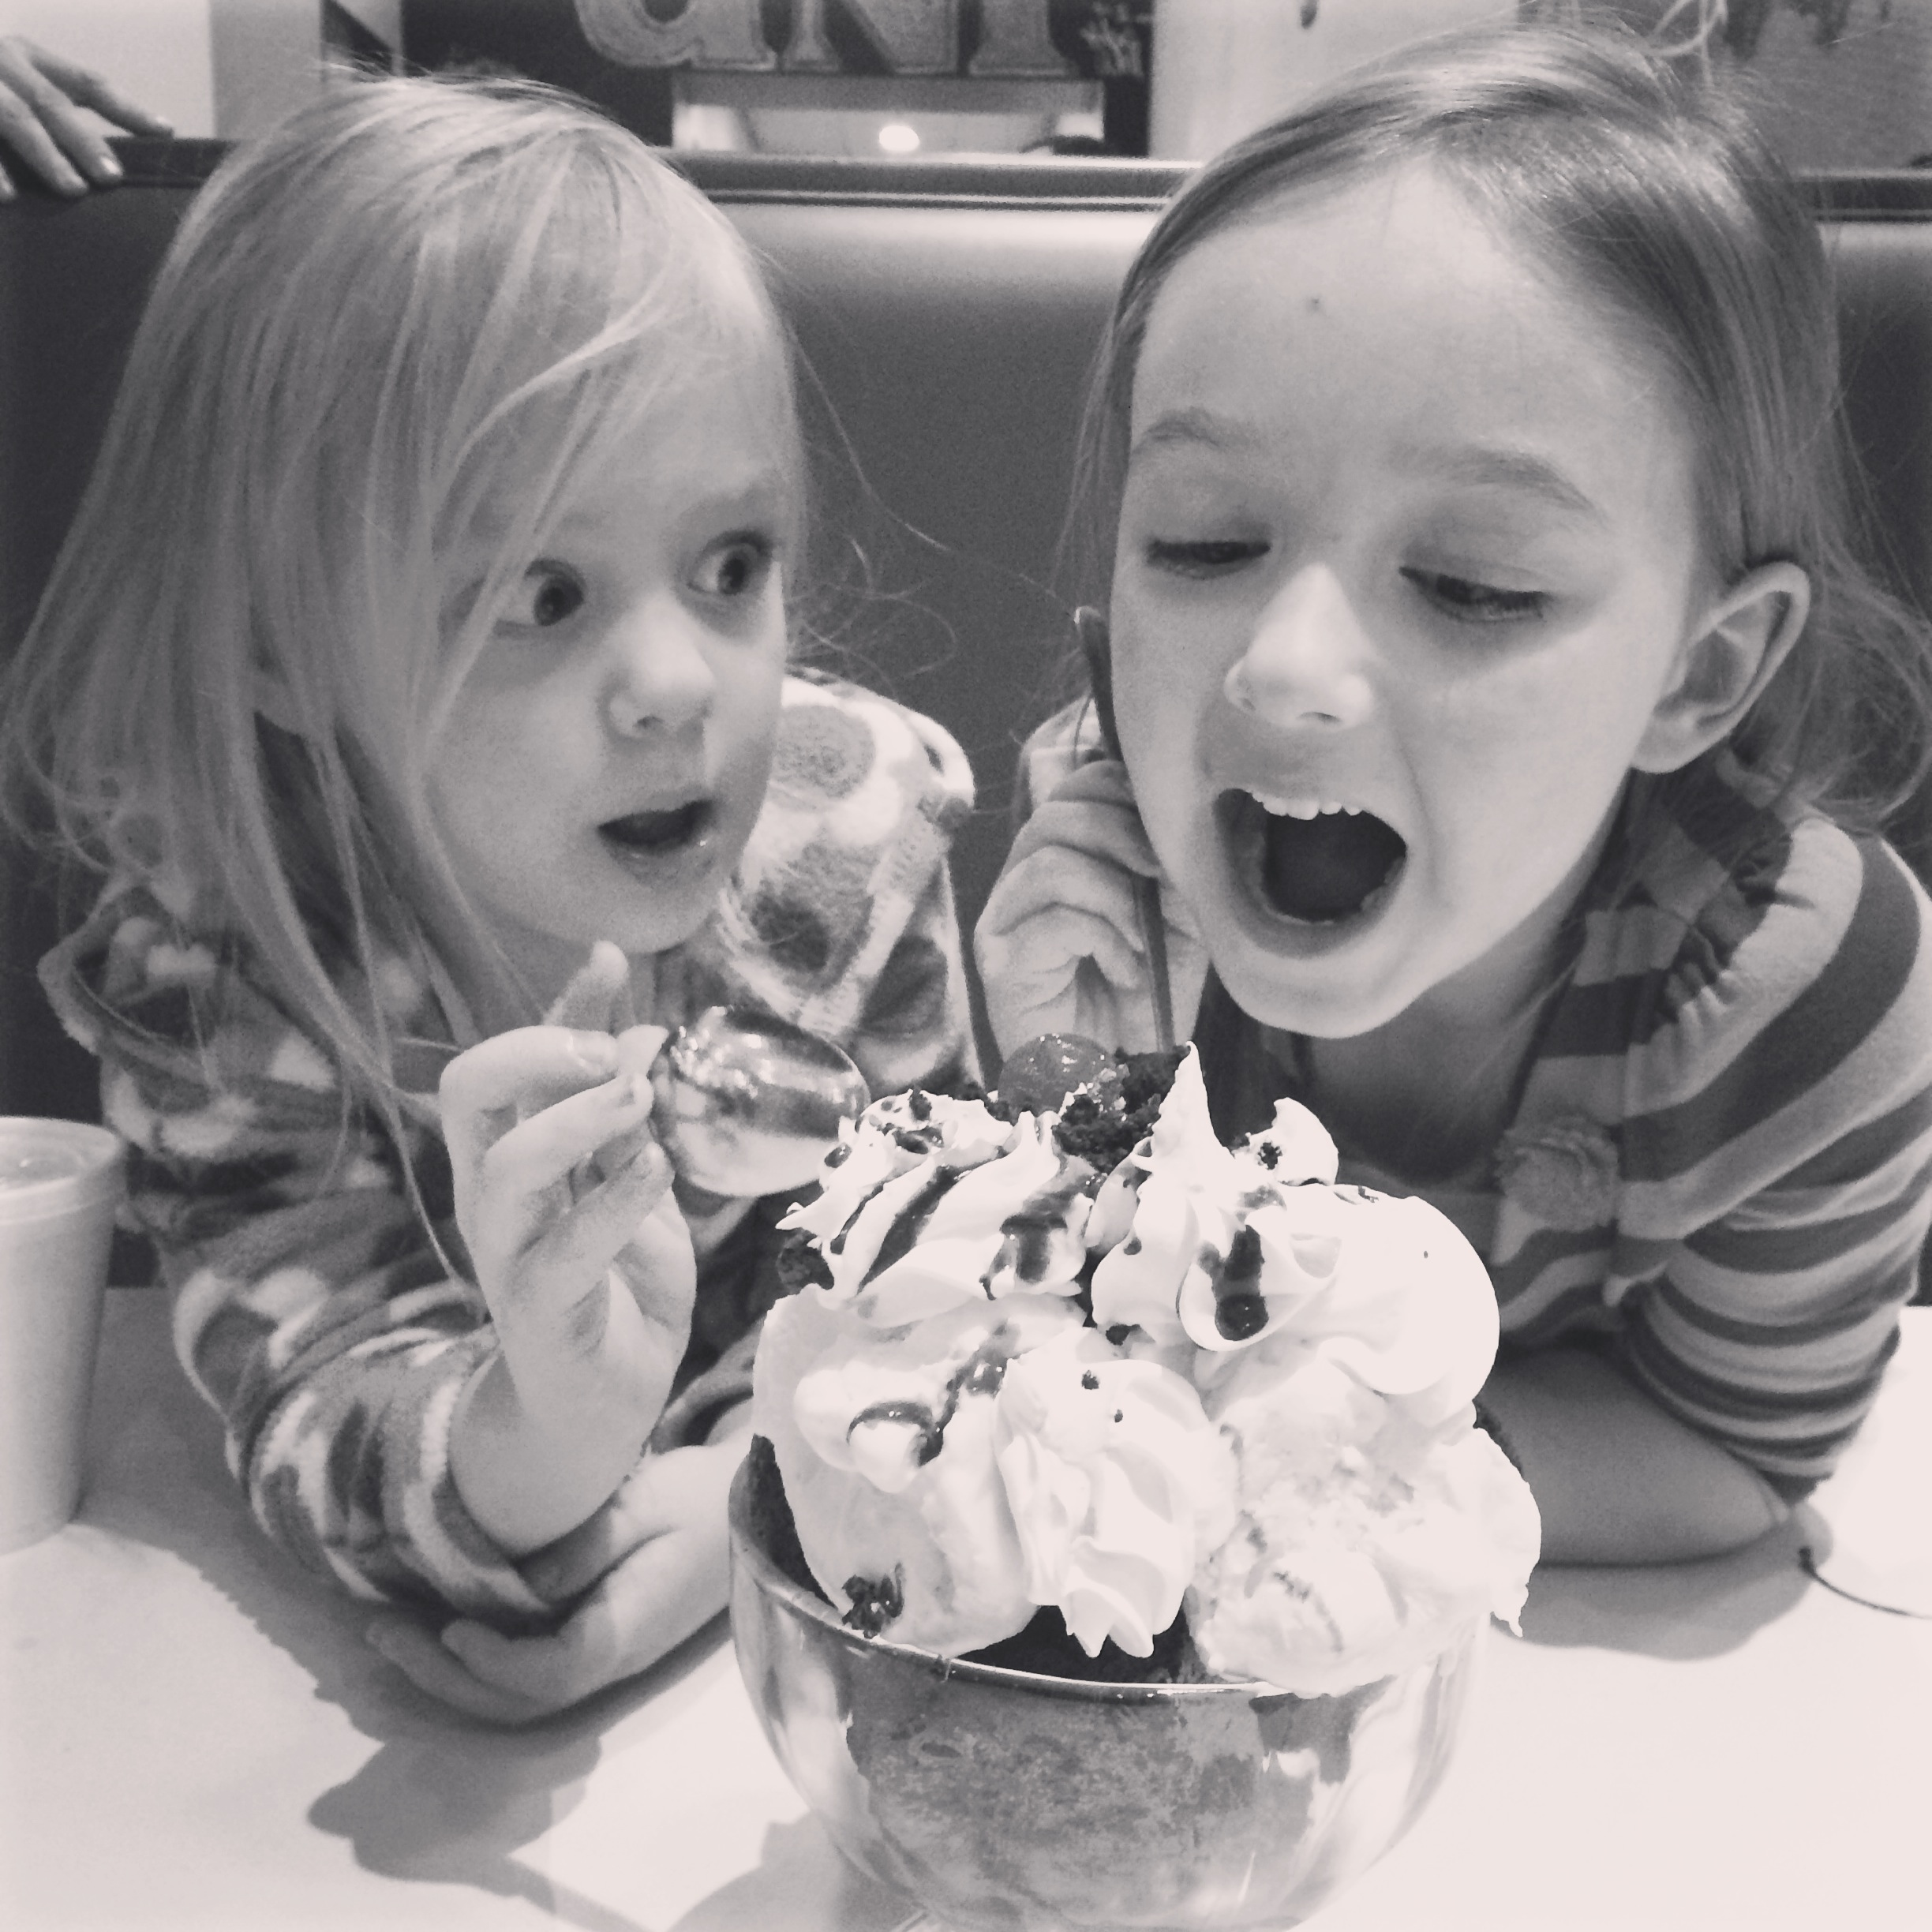 Later we followed our hearts to an ENORMOUS BROWNIE SUNDAE.